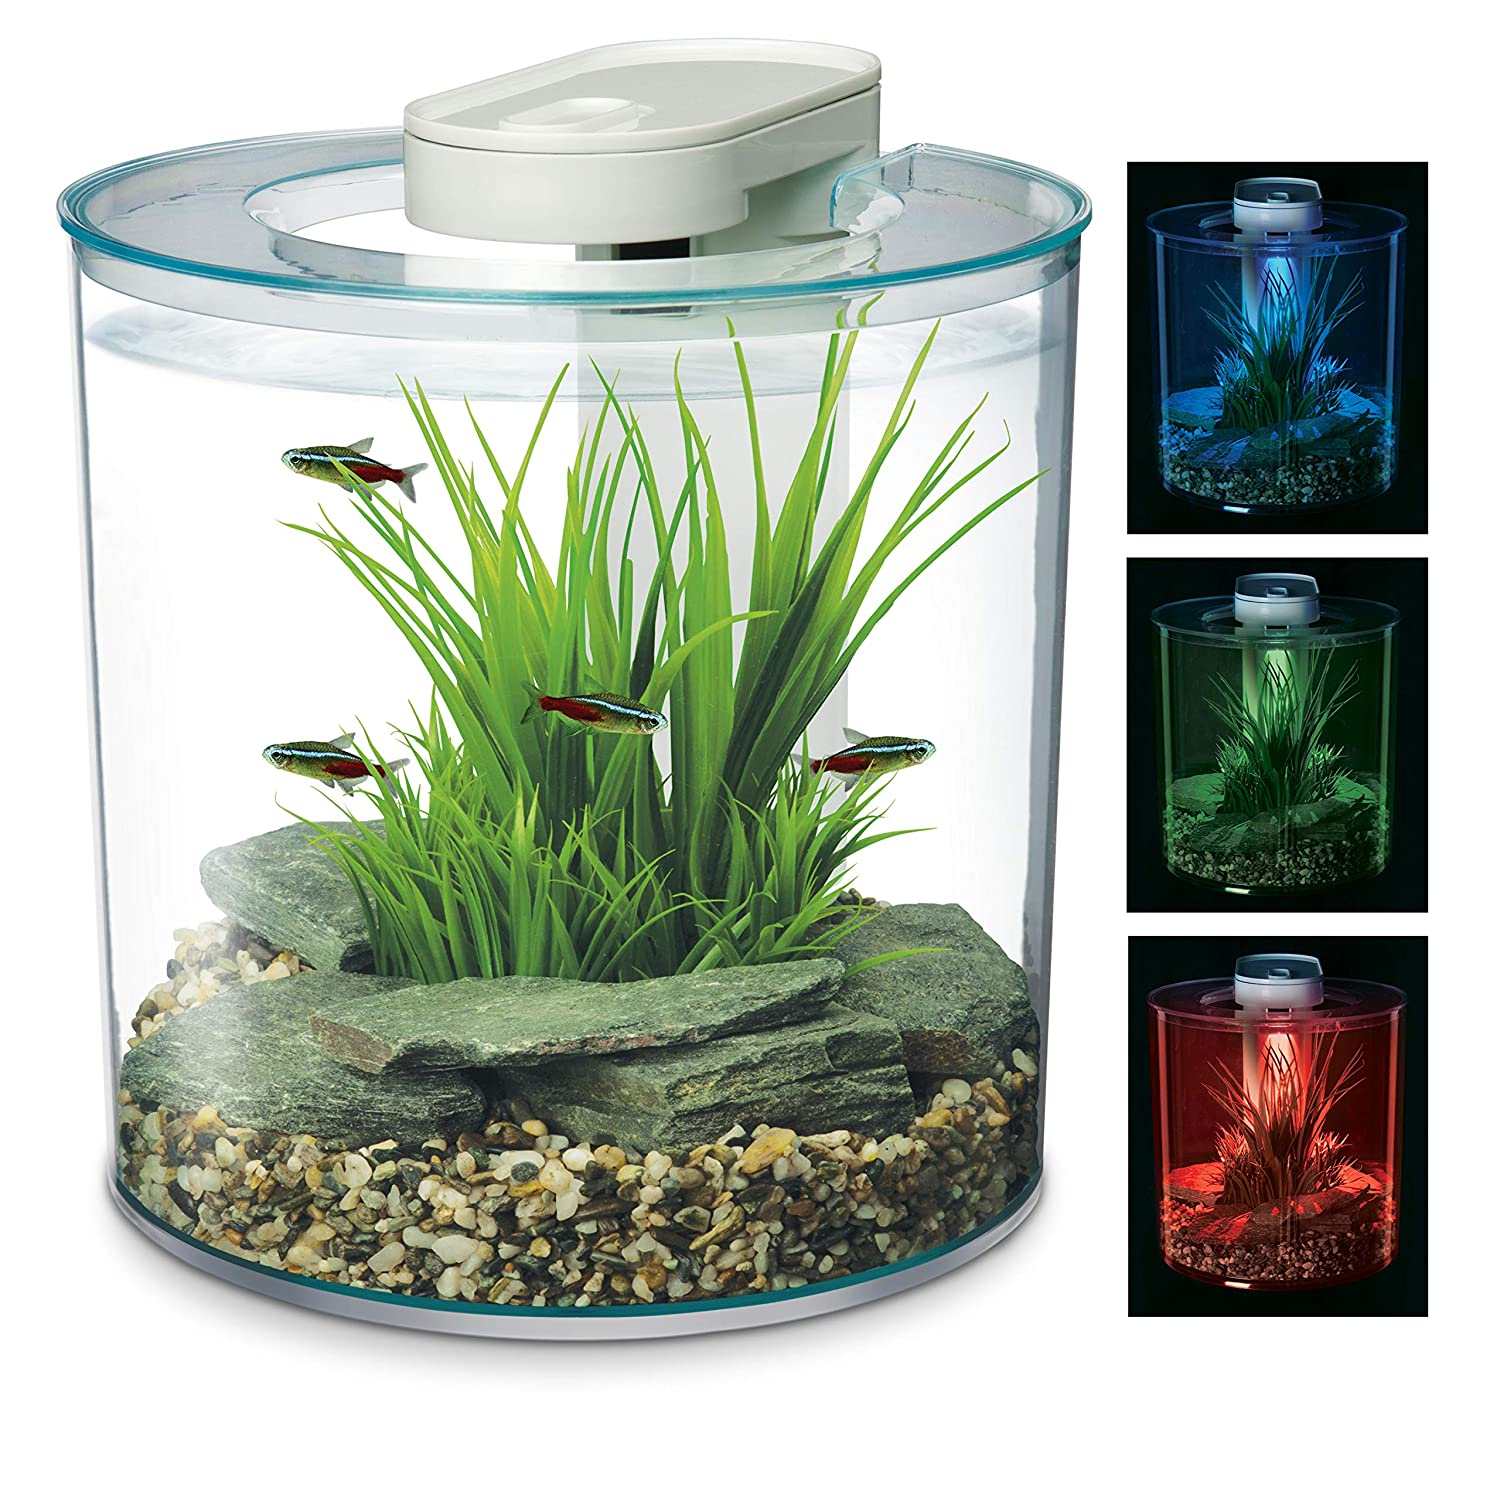 Marina 360 Aquarium with Remote Control LED Lighting, 10 Litre, Multicolour